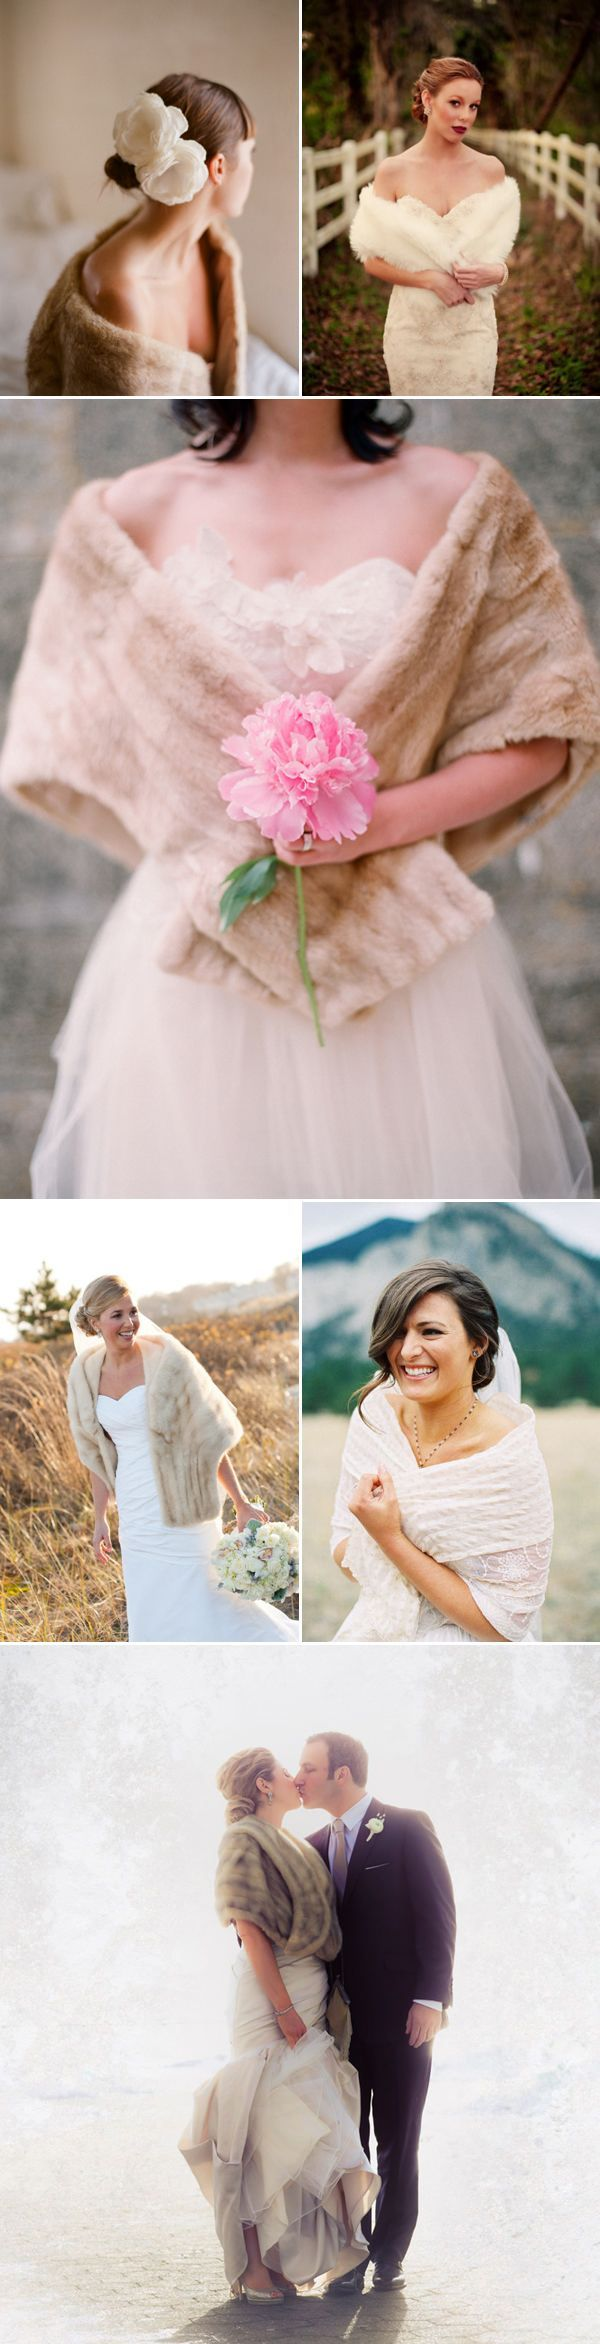 Itus important for winter brides to consider a warm cover up option